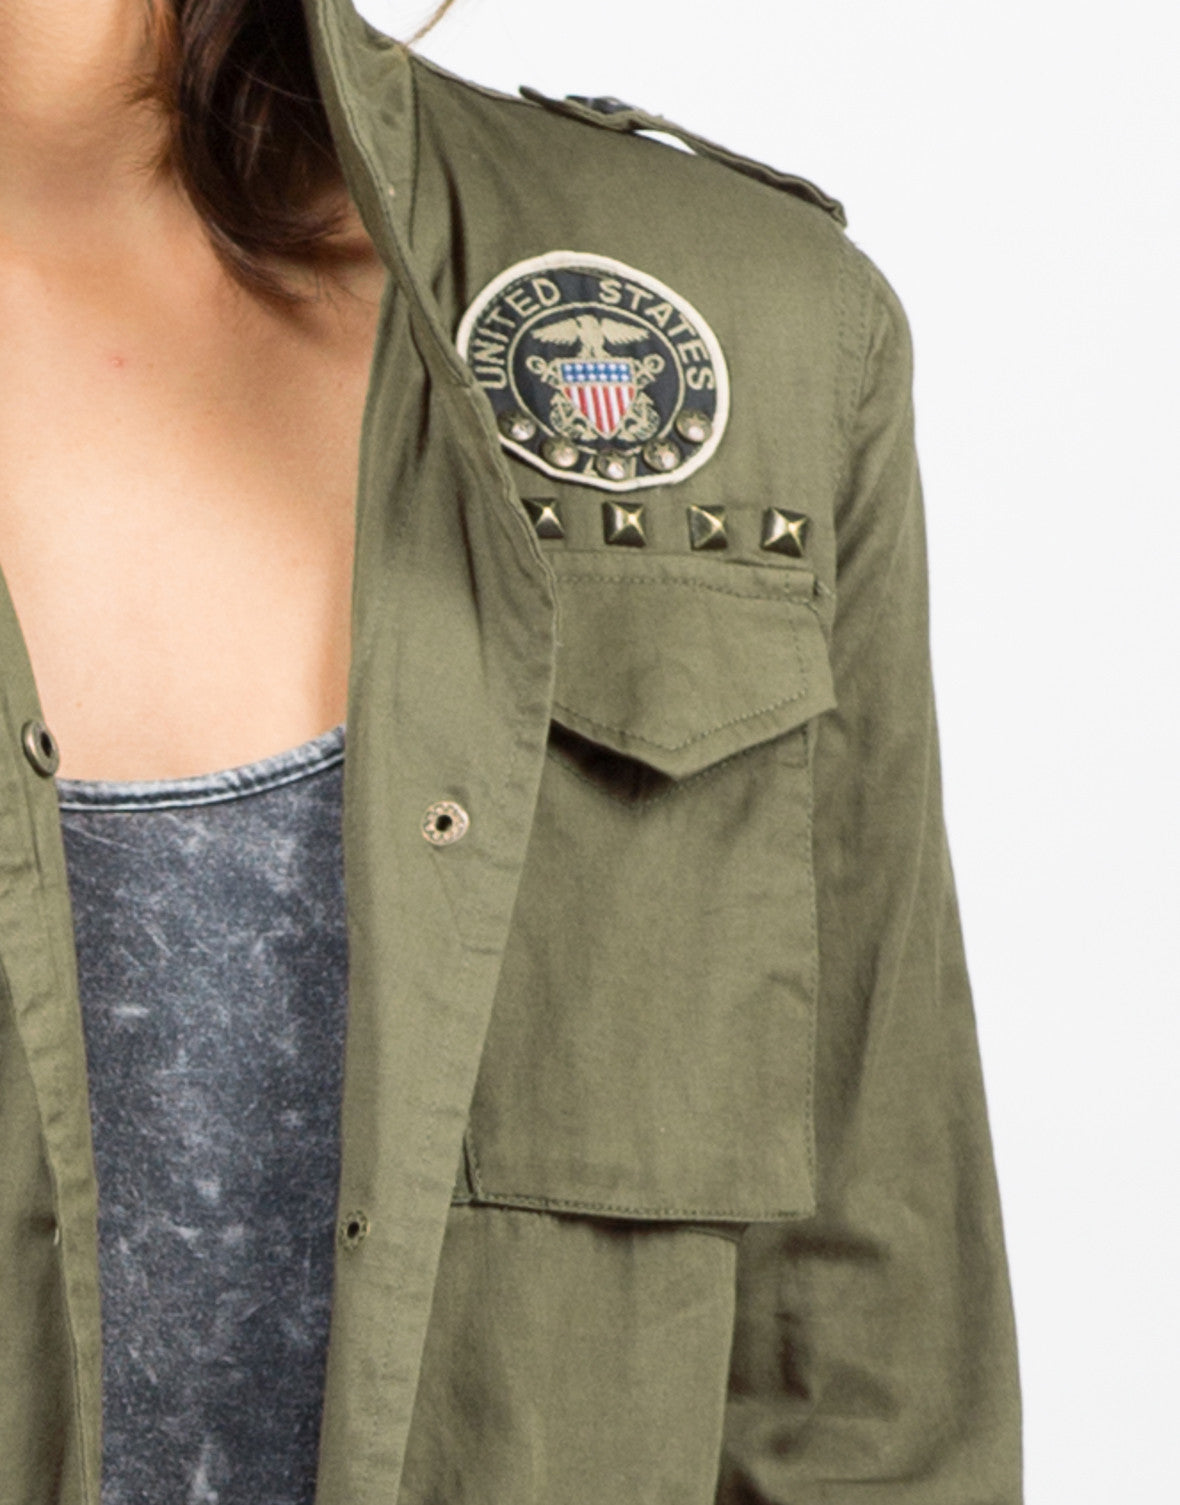 Detail of Army Shirt Jacket